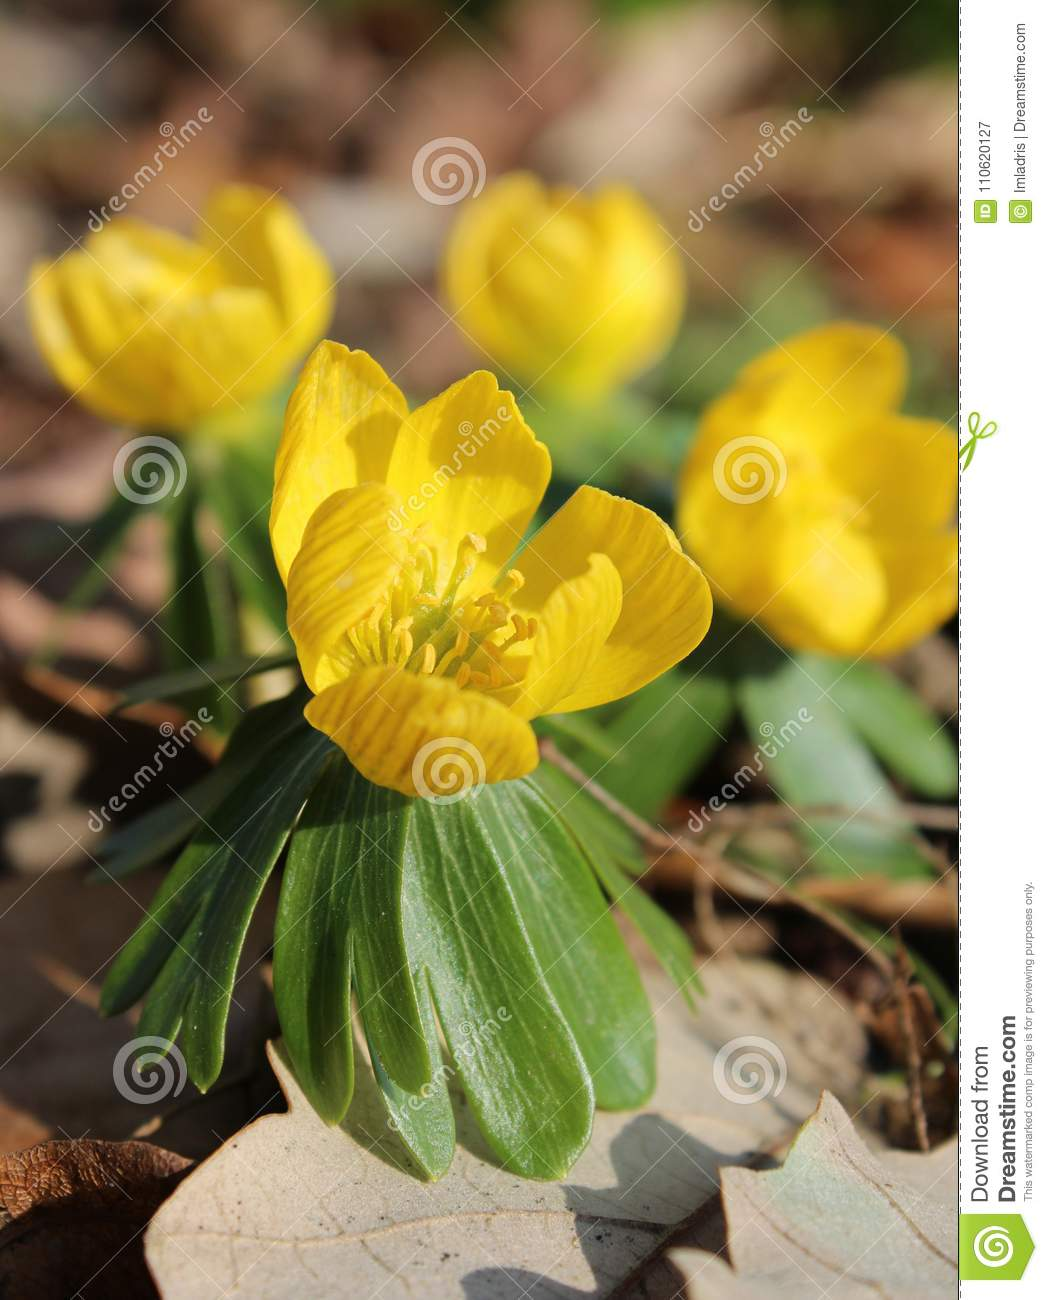 Yellow Anemone Ranunculoides Flower Stock Image Image Of Bloom